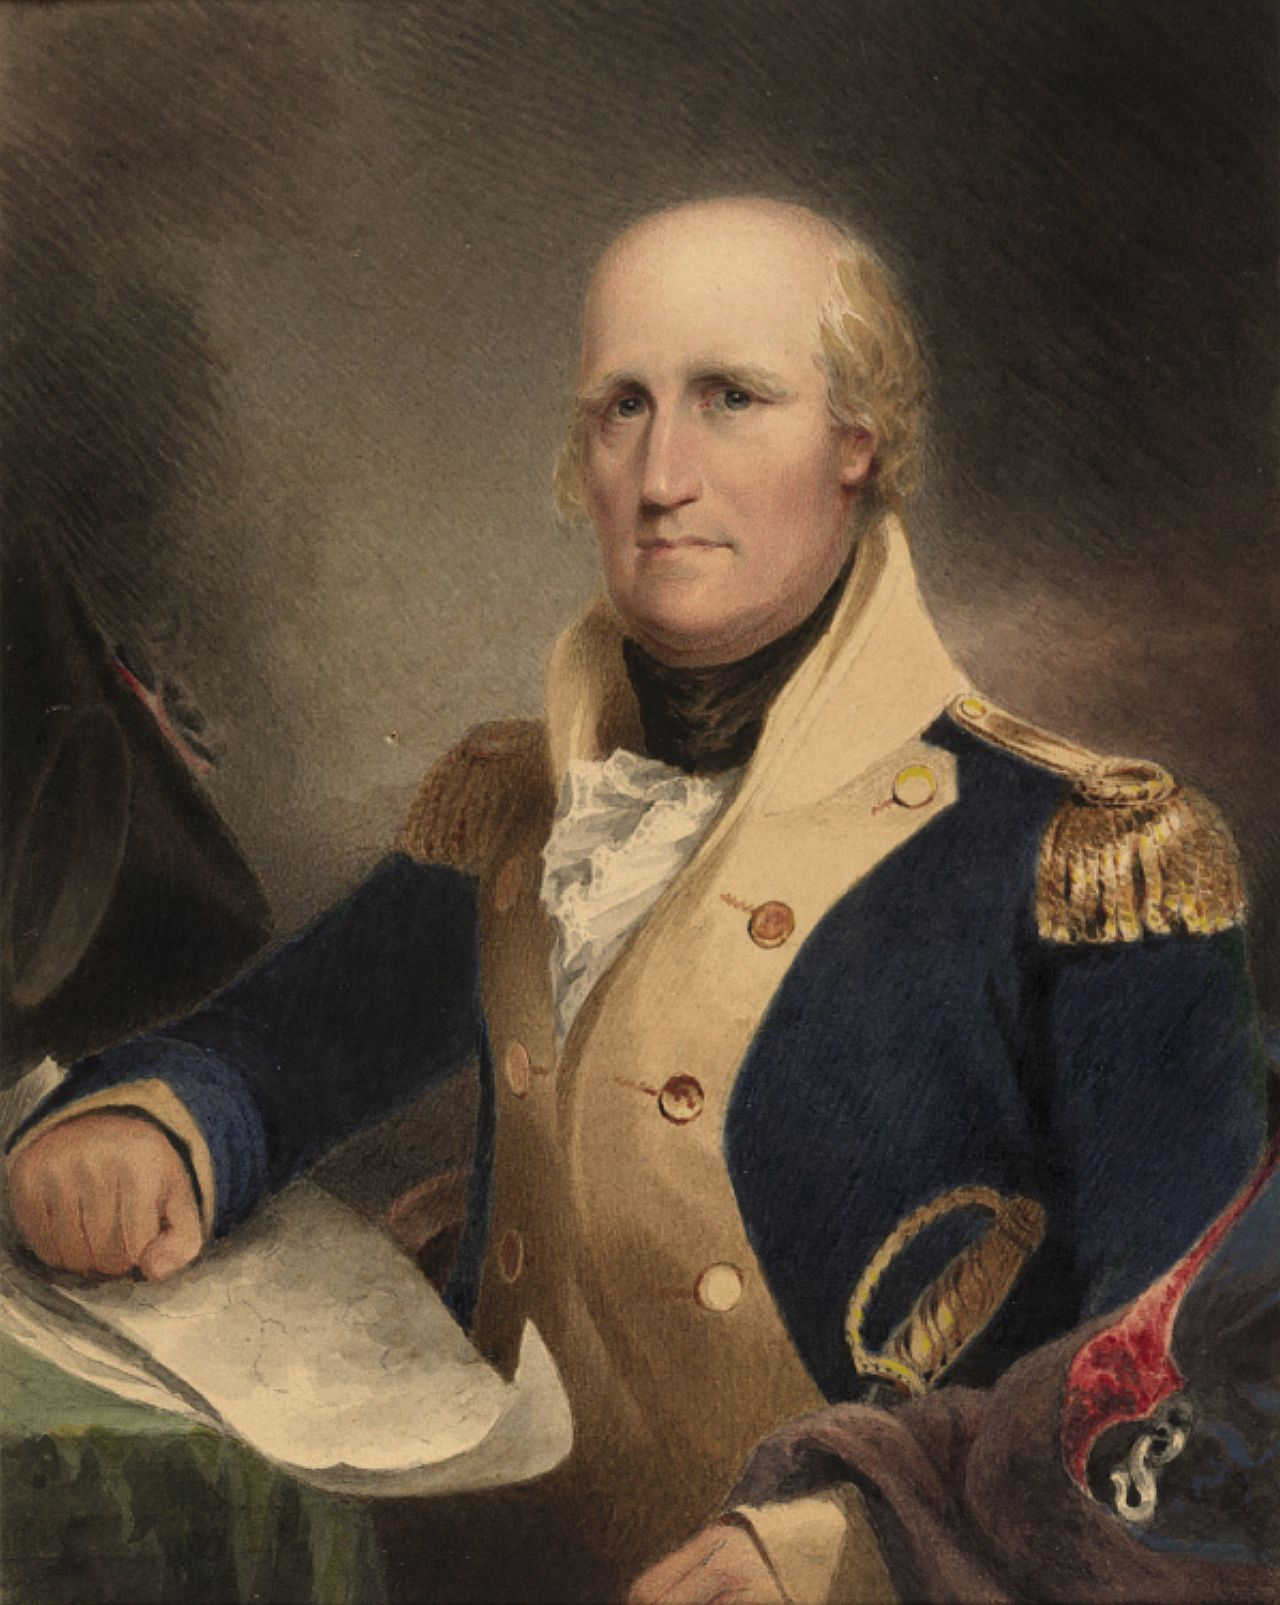 A bald man with rosy cheeks wearing a high-collared jacket